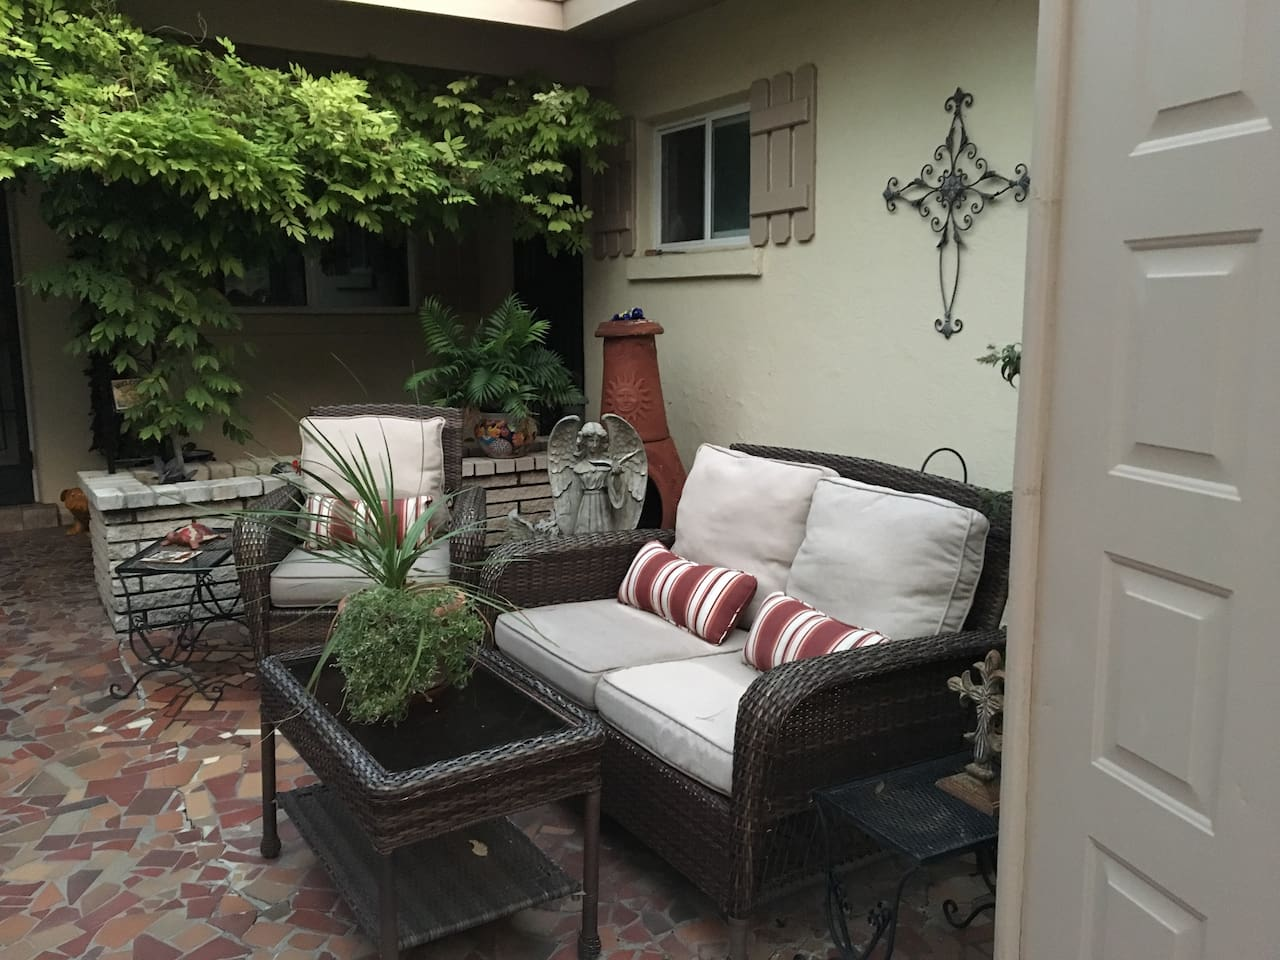 Relax and enjoy your private casita as well as the patio located  right outside your door.